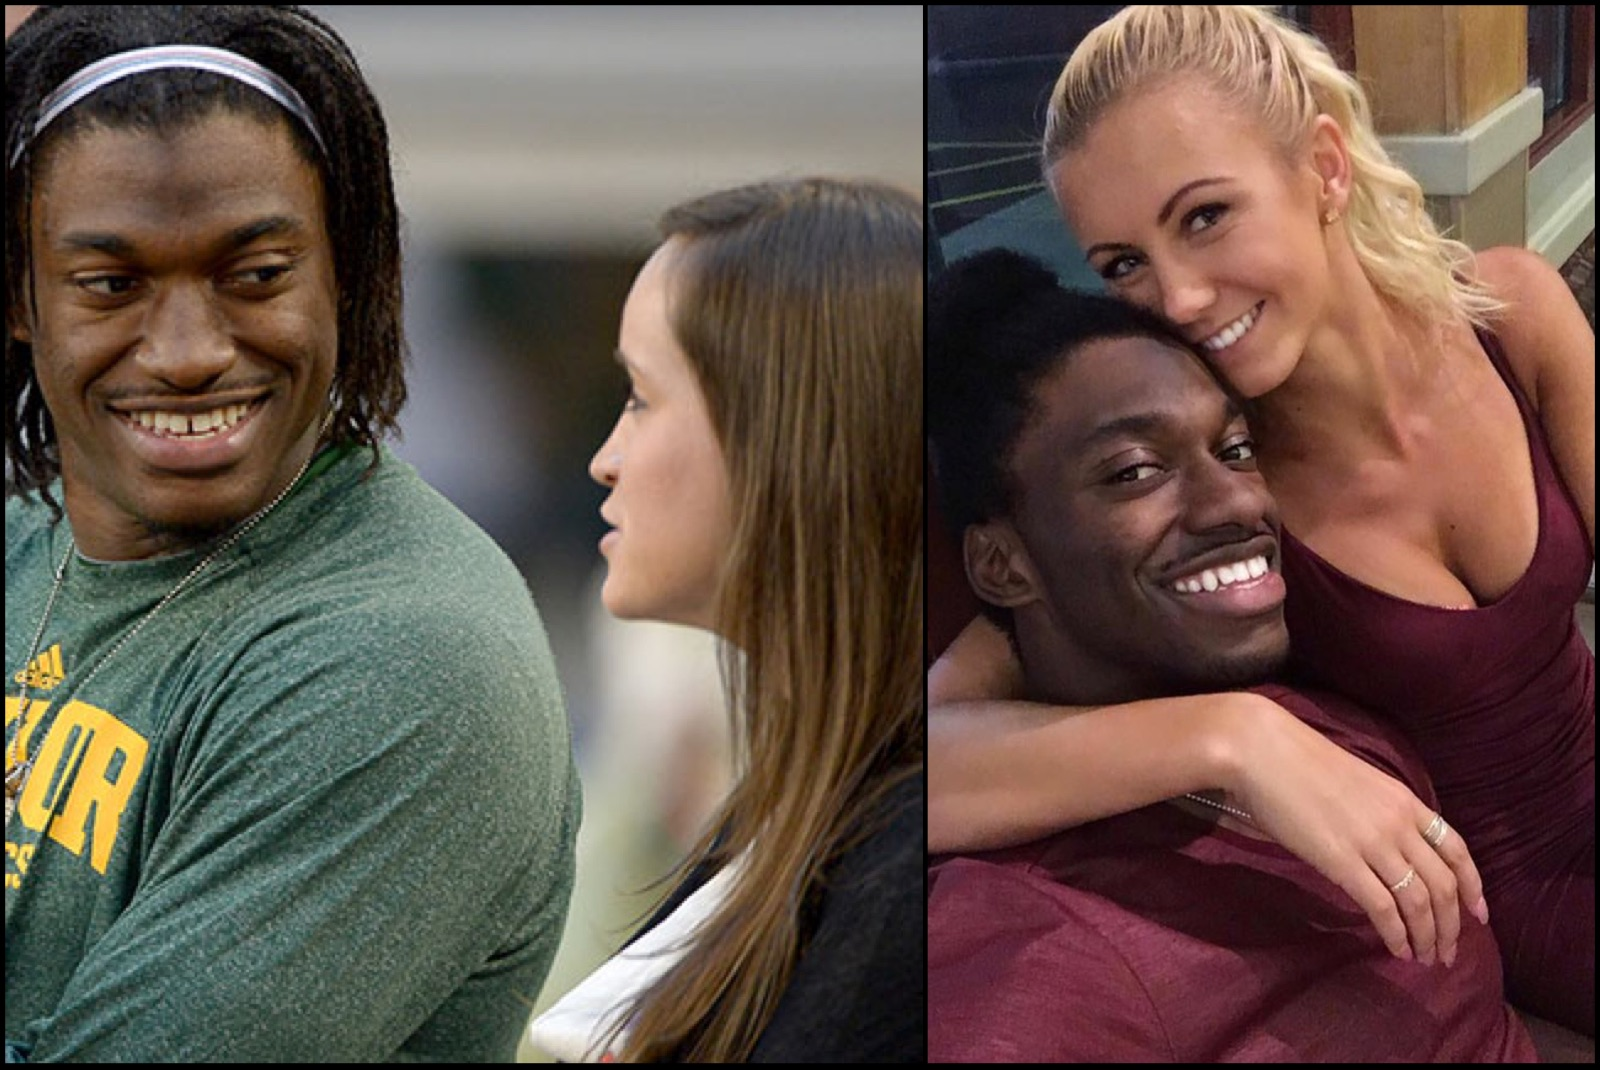 RG3 and his new wife